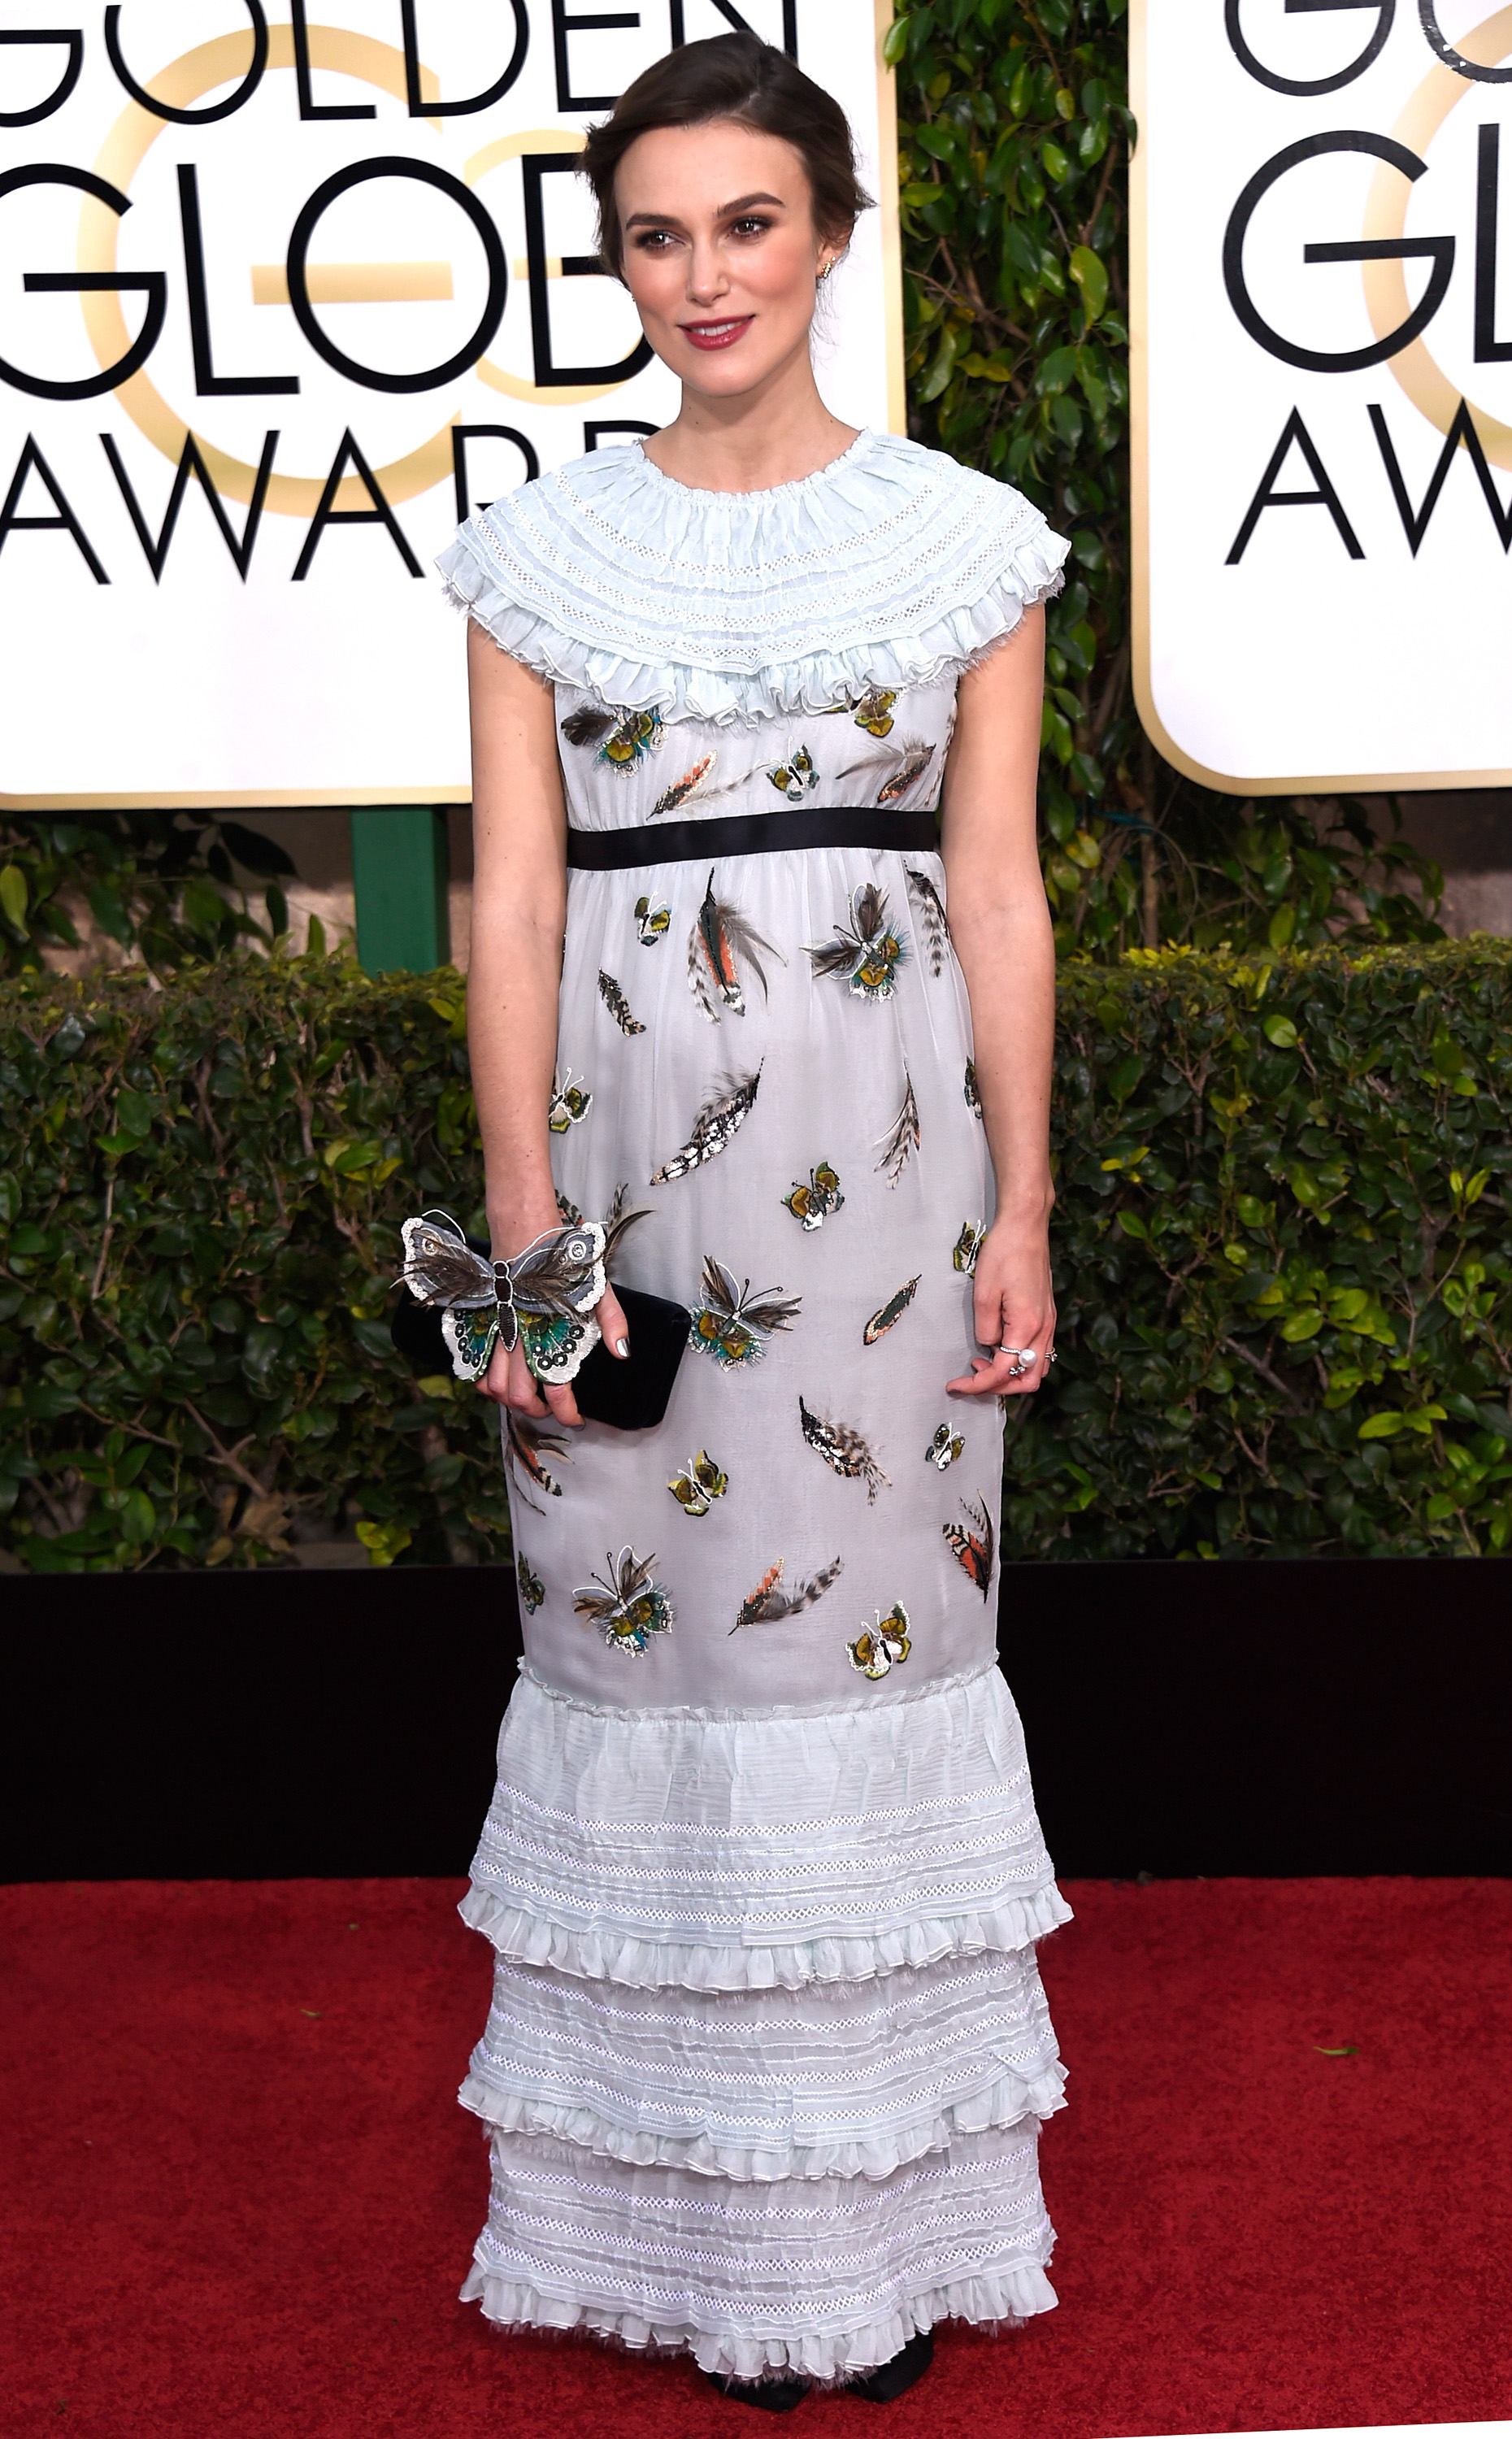 Keira Knightley at 2015 Golden Globes